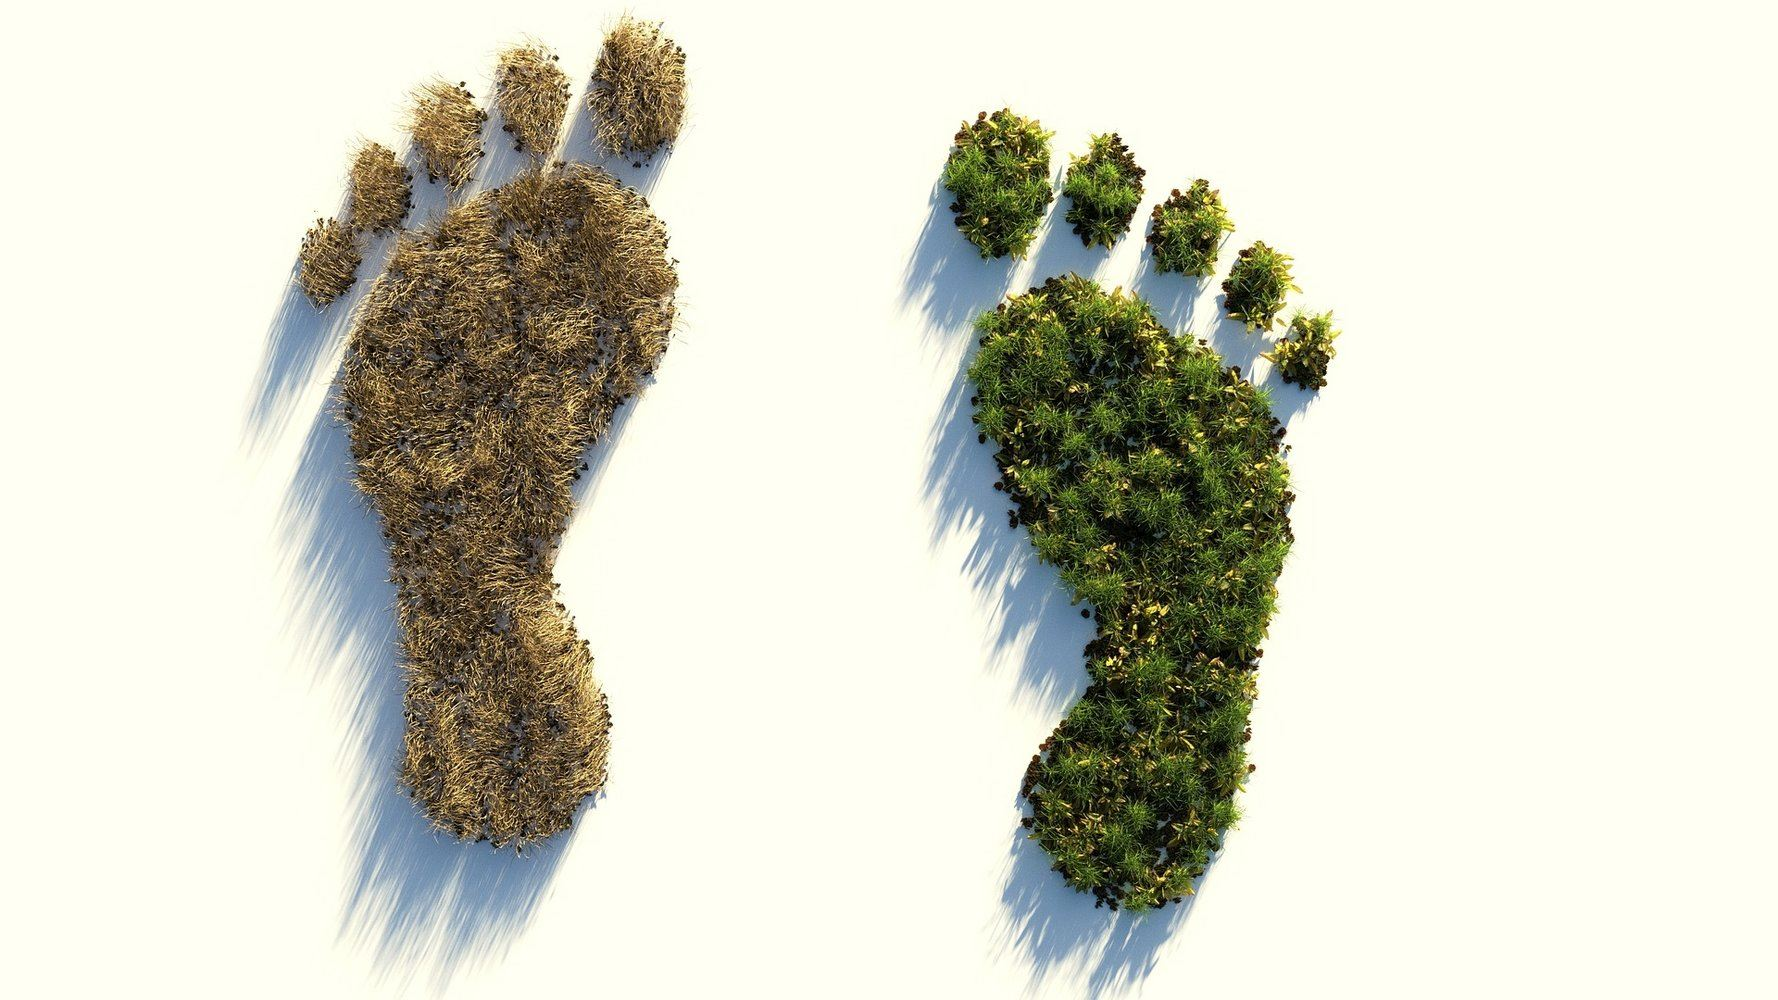 ecological-footprint-4123696_1920-jpg__1920x1000_q85_subsampling-2